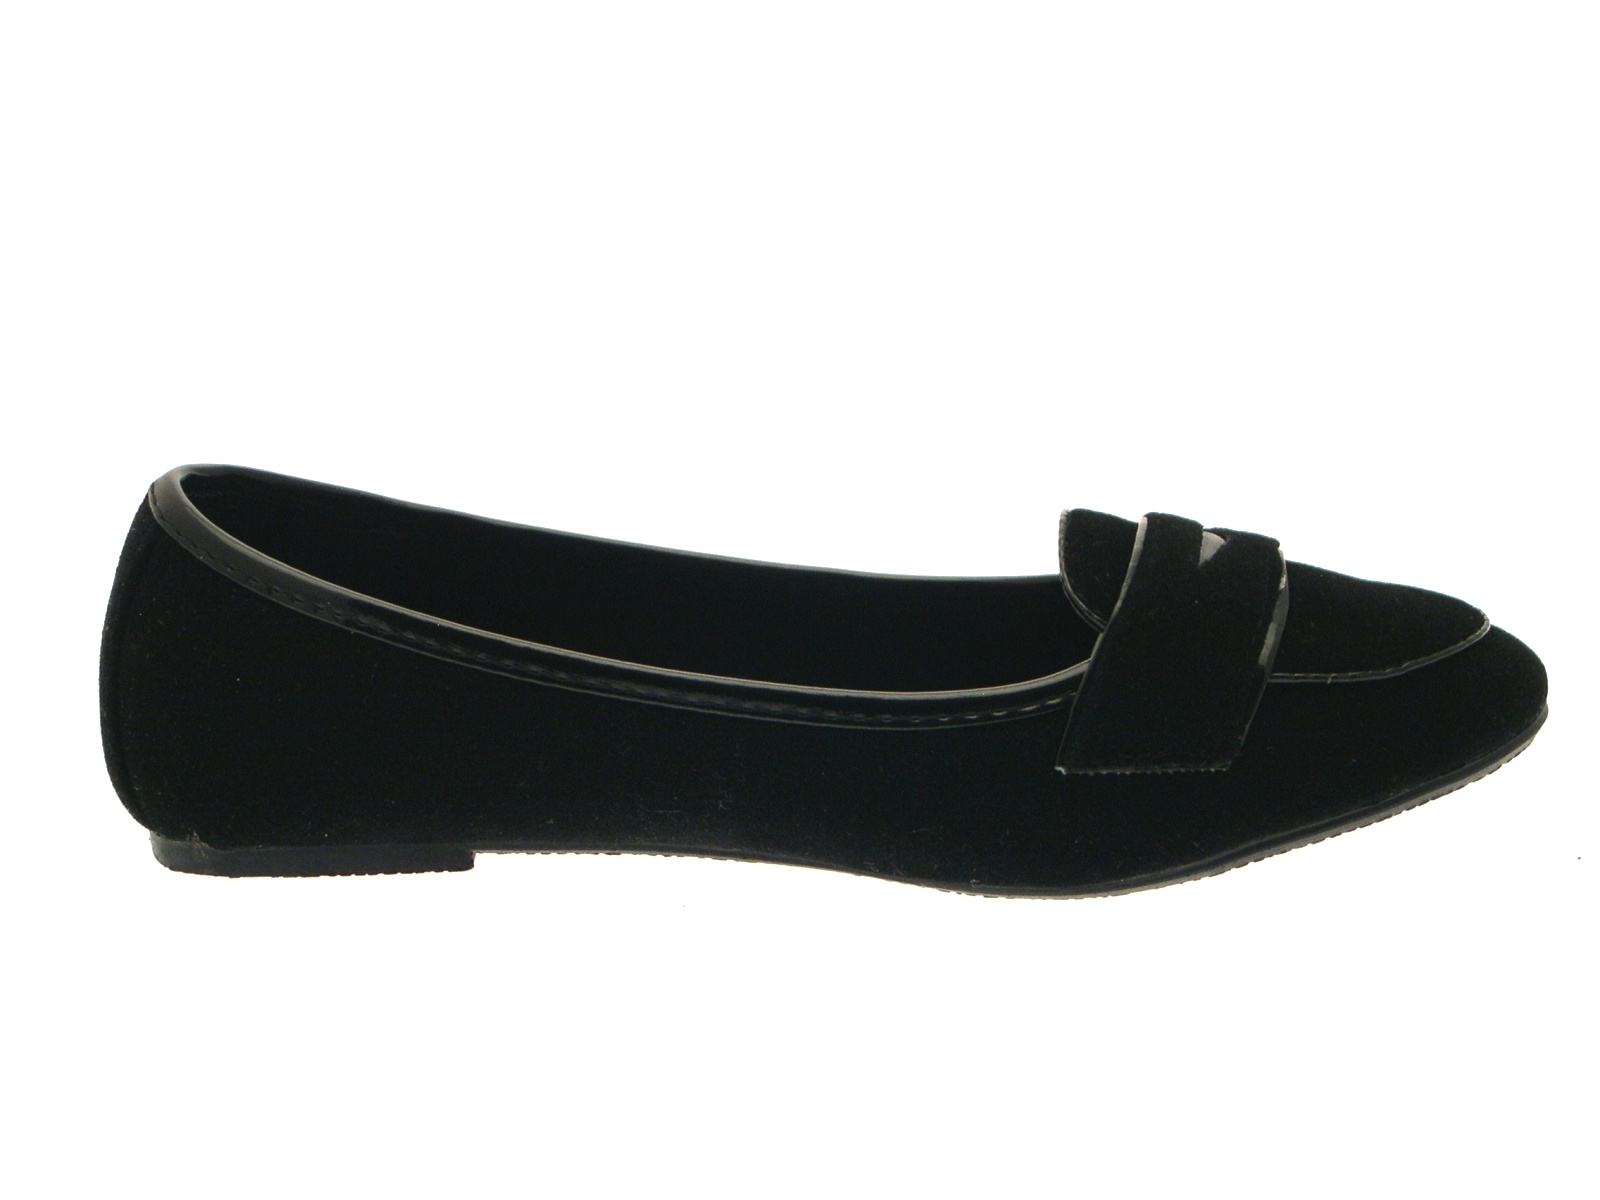 8c5a27c7ae0 Girls Black Slip On Plain Faux Suede Loafer School Shoes Ballerinas ...